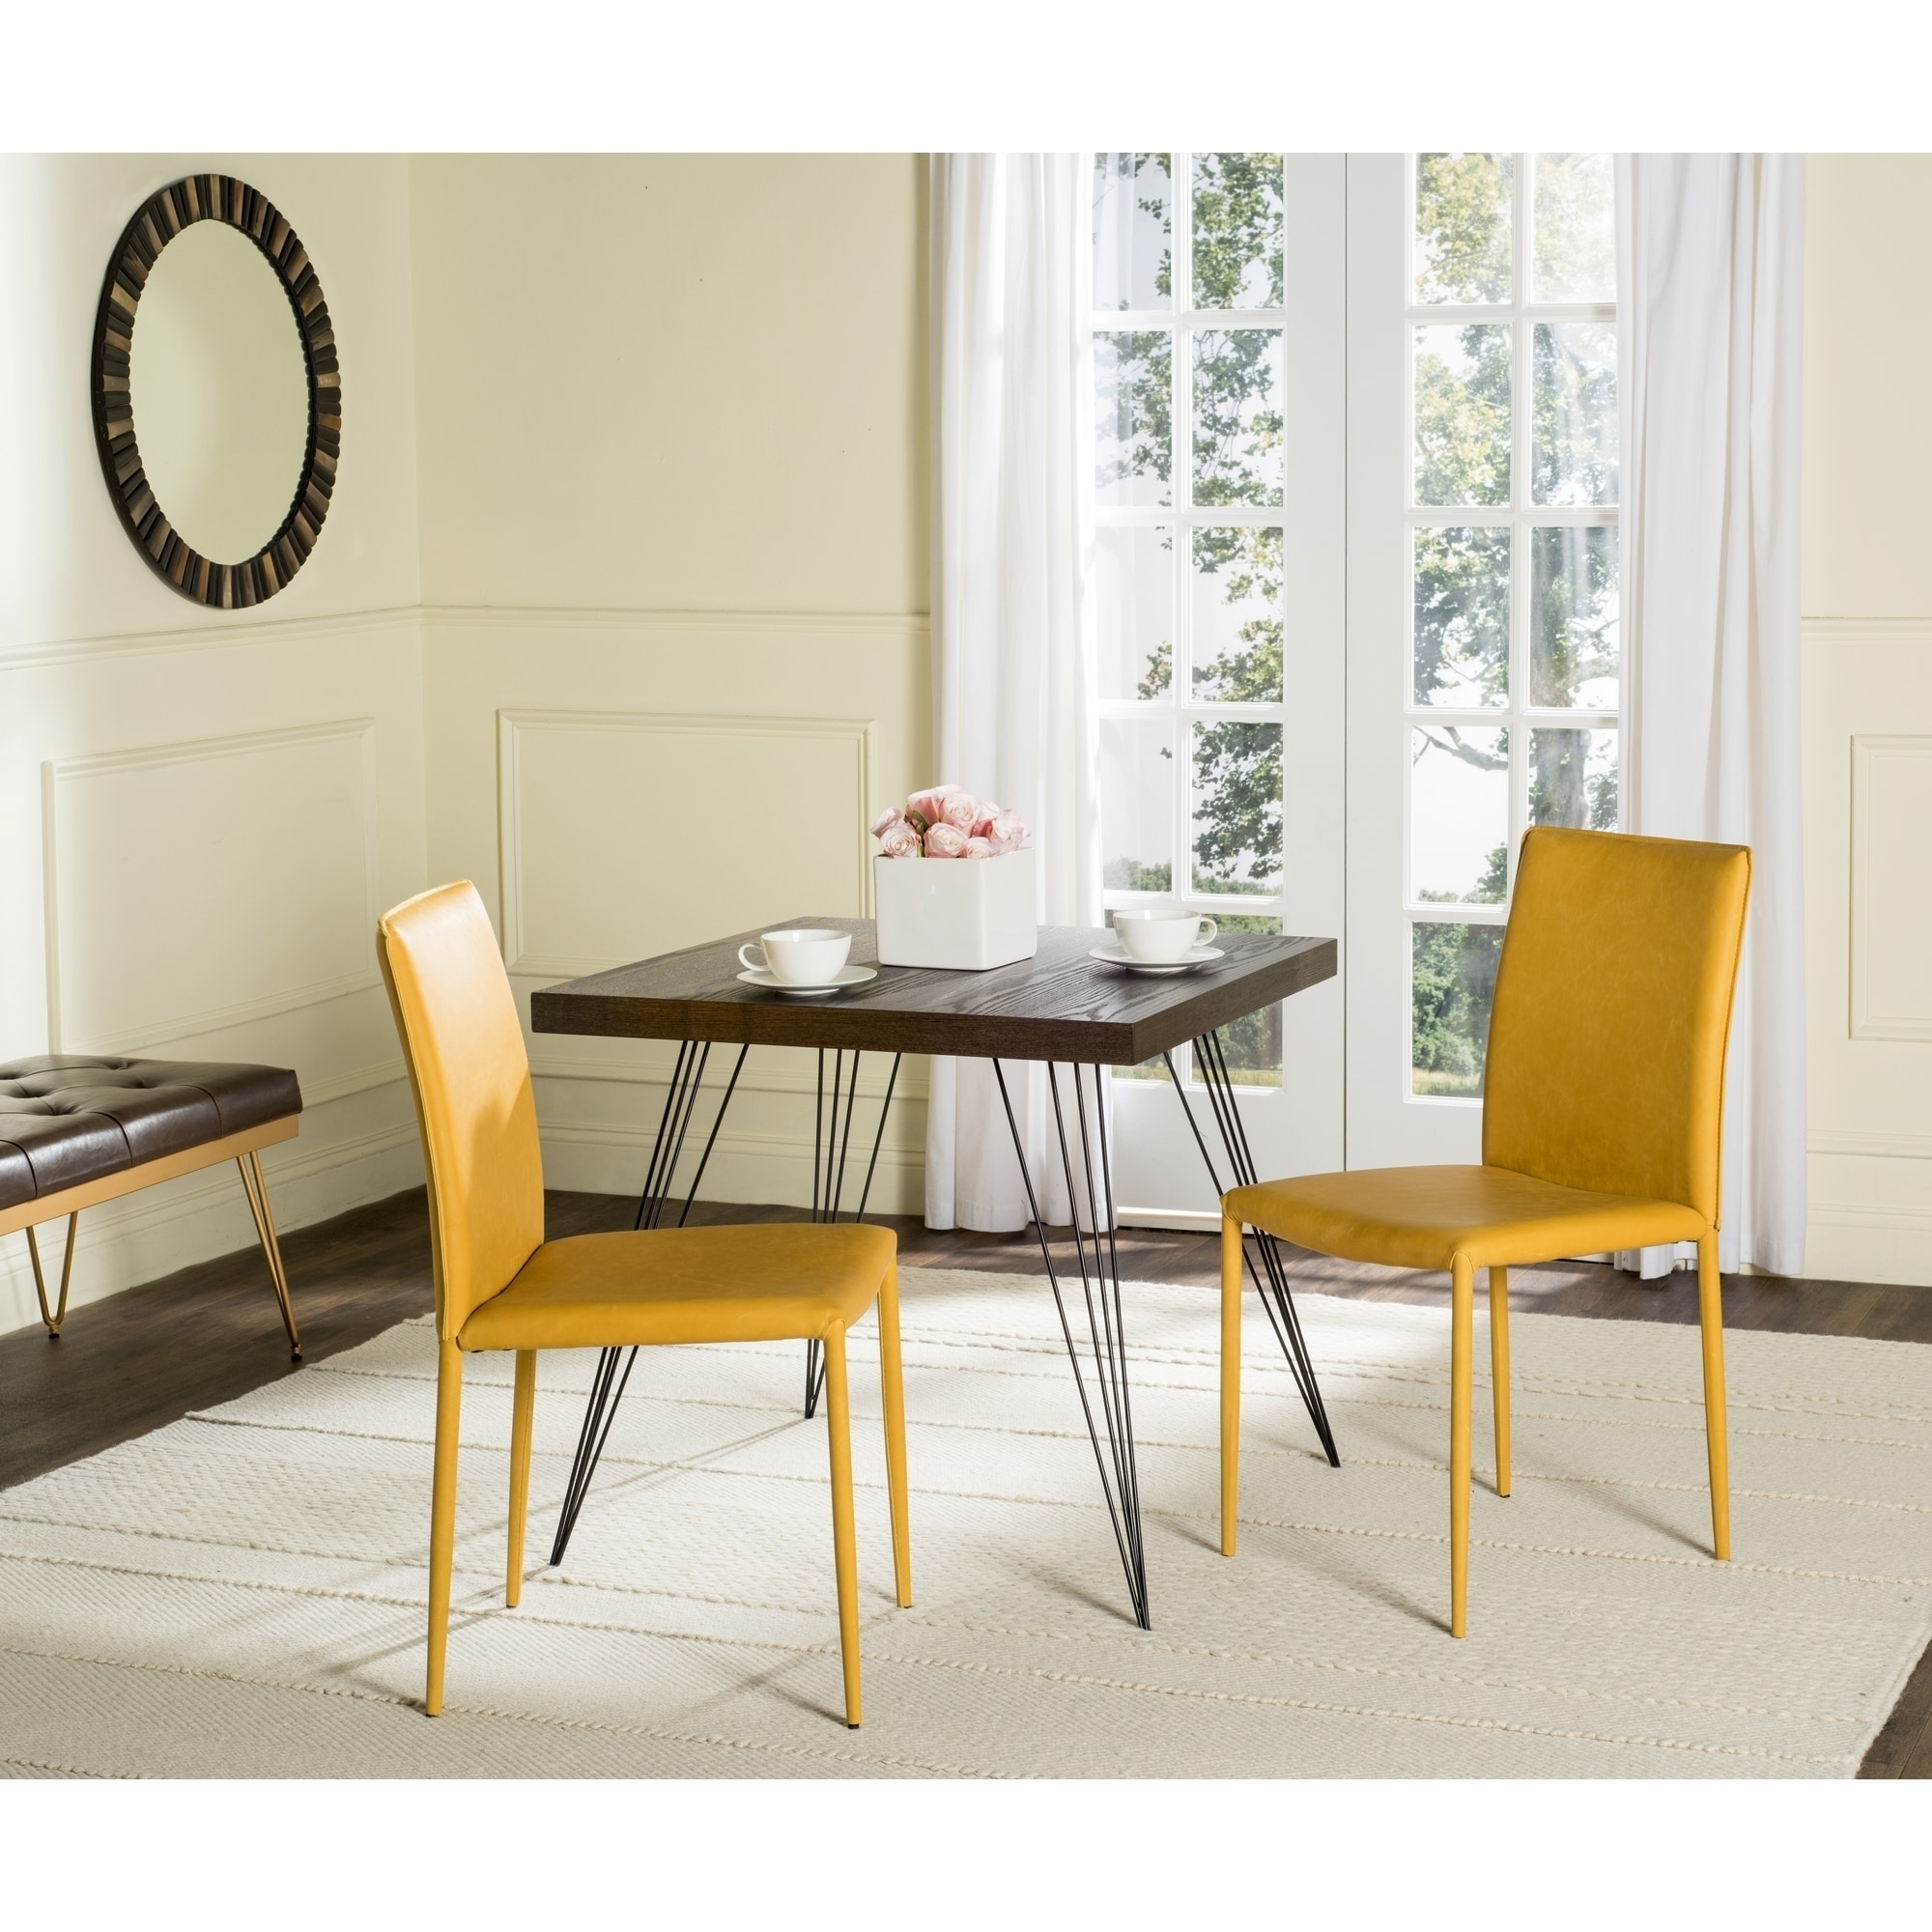 dining yellow chairs shelves room vivacious top pops colorful with accents modern along table subtle black the steal chair floating show open of